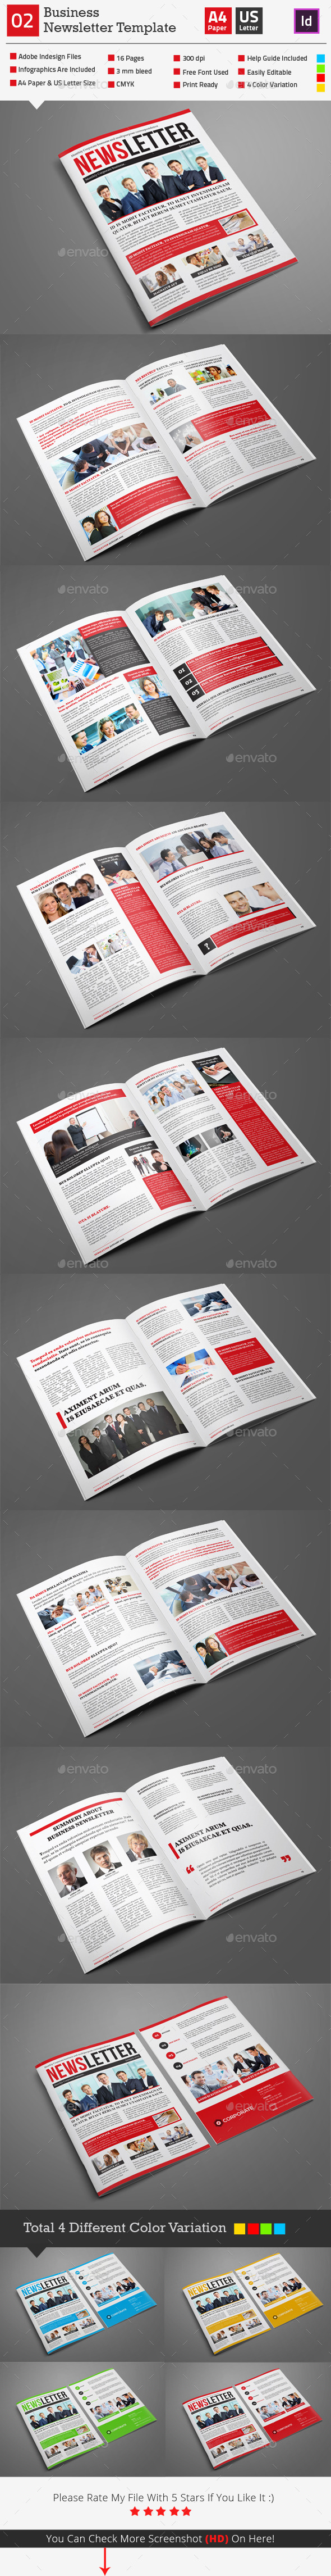 GraphicRiver Newsletter Template 02 9724427